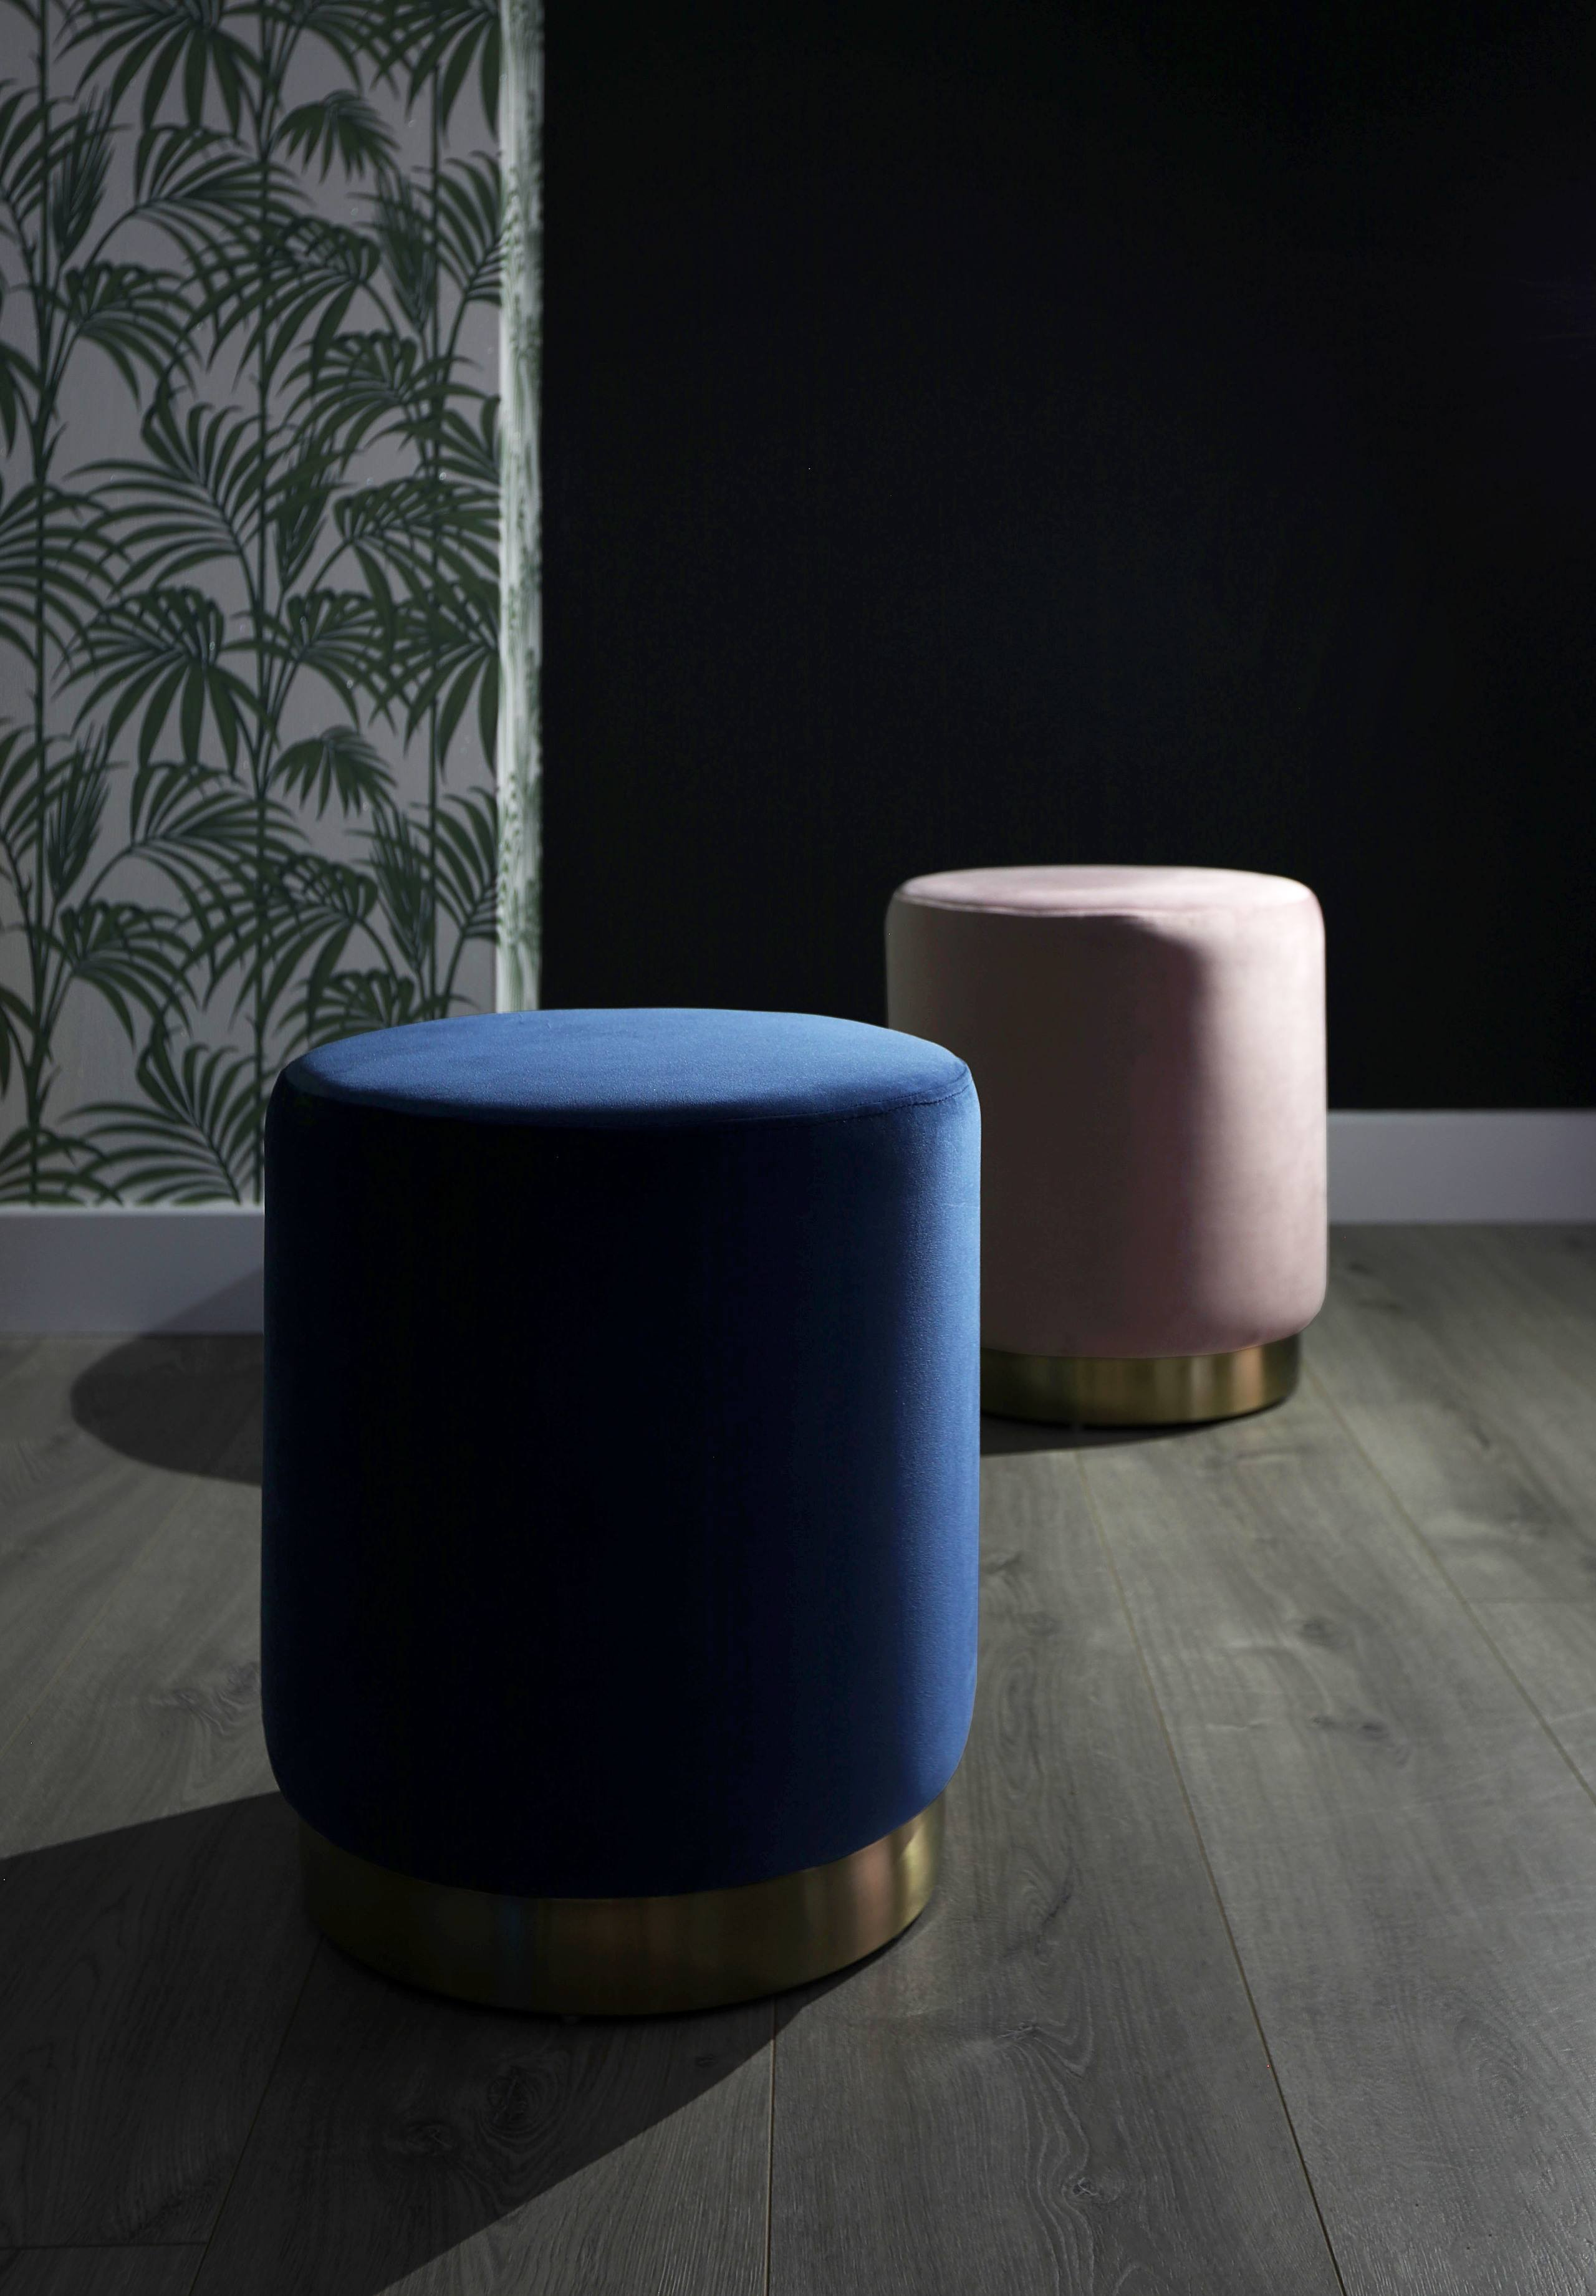 Plaza Sapphire Blue Velvet Stool and Plaza Blush Velvet Stool